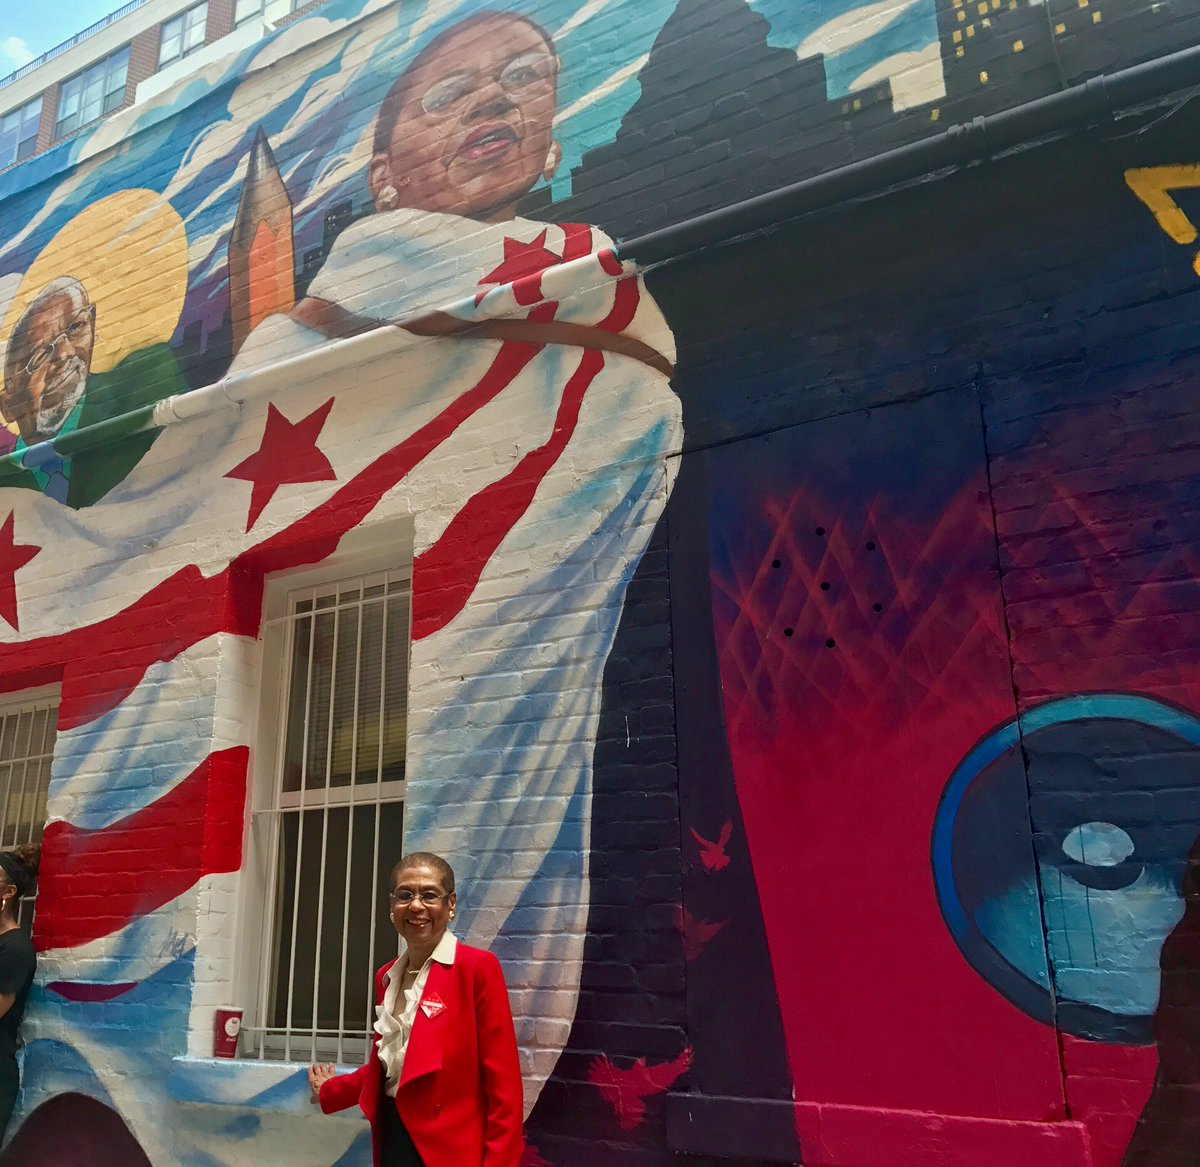 It's U.S. #FlagDay today, but I'm all wrapped up in the DC flag, thanks to the @benschilibowl mural. An outfit that never goes out of style. #DCFlagDay <br>http://pic.twitter.com/sjiMXlu9Lm